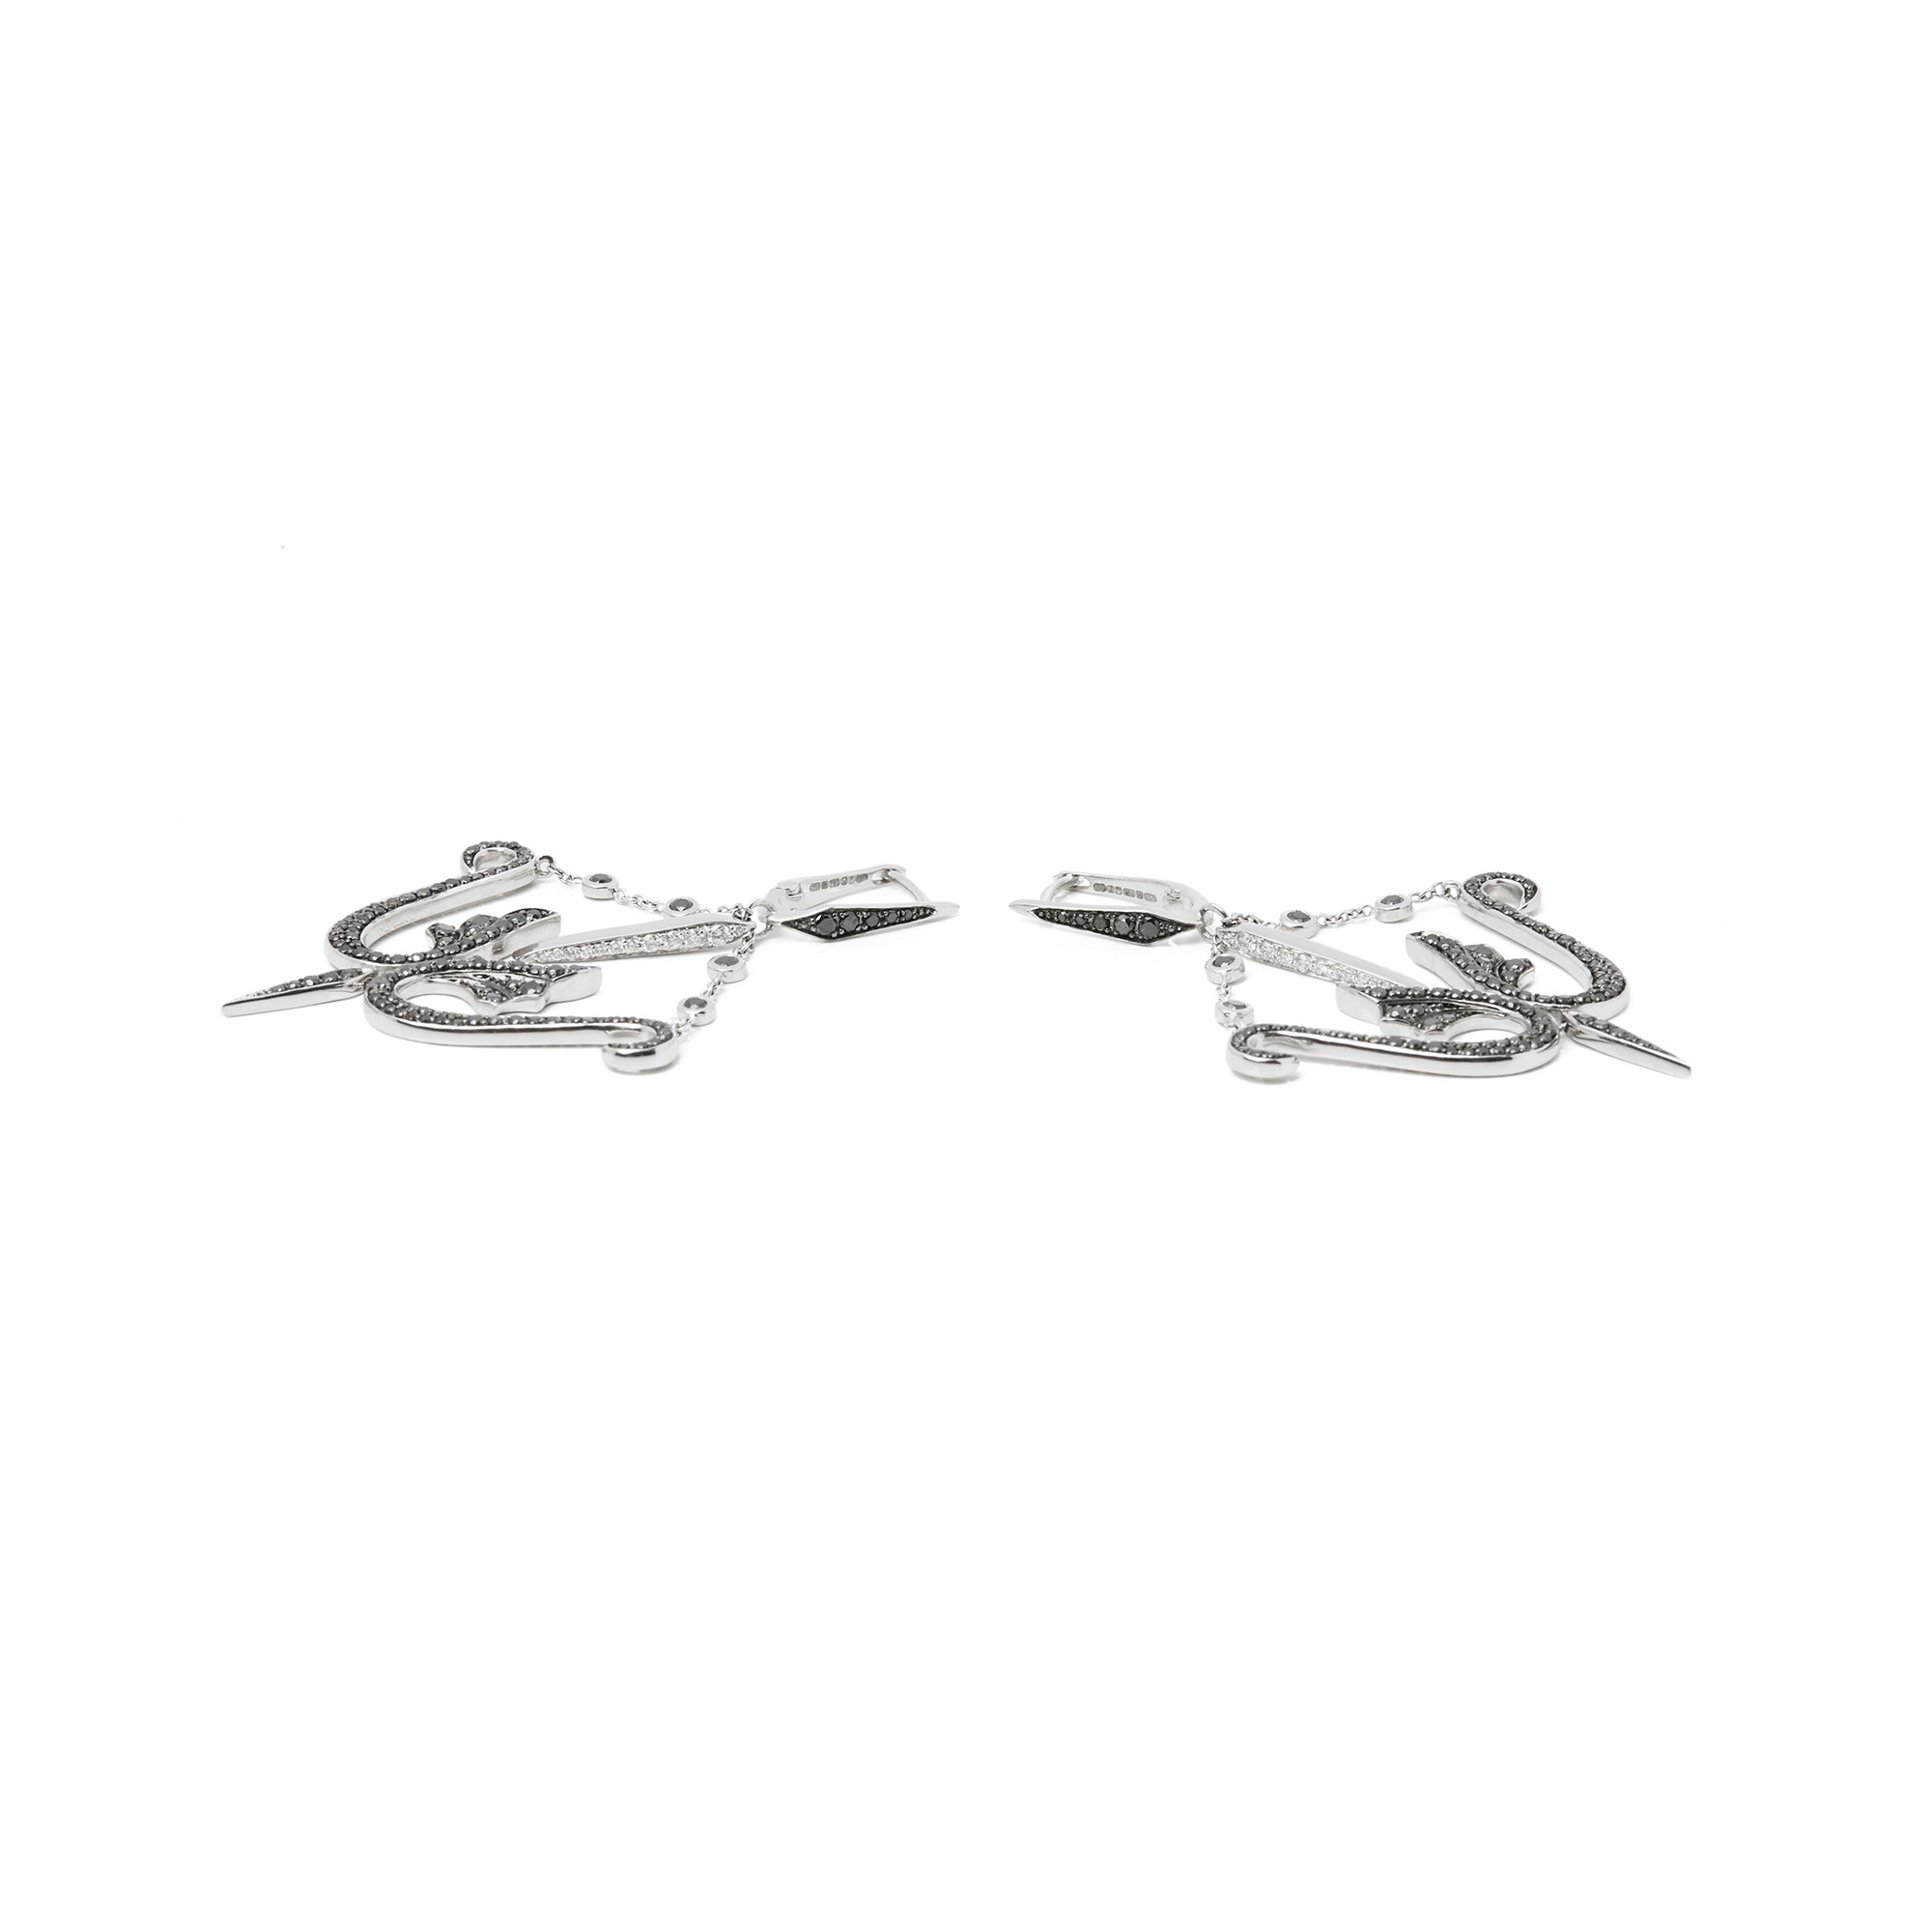 Stephen Webster Jewels Verne 18ct White Gold Diamond Drop Earring